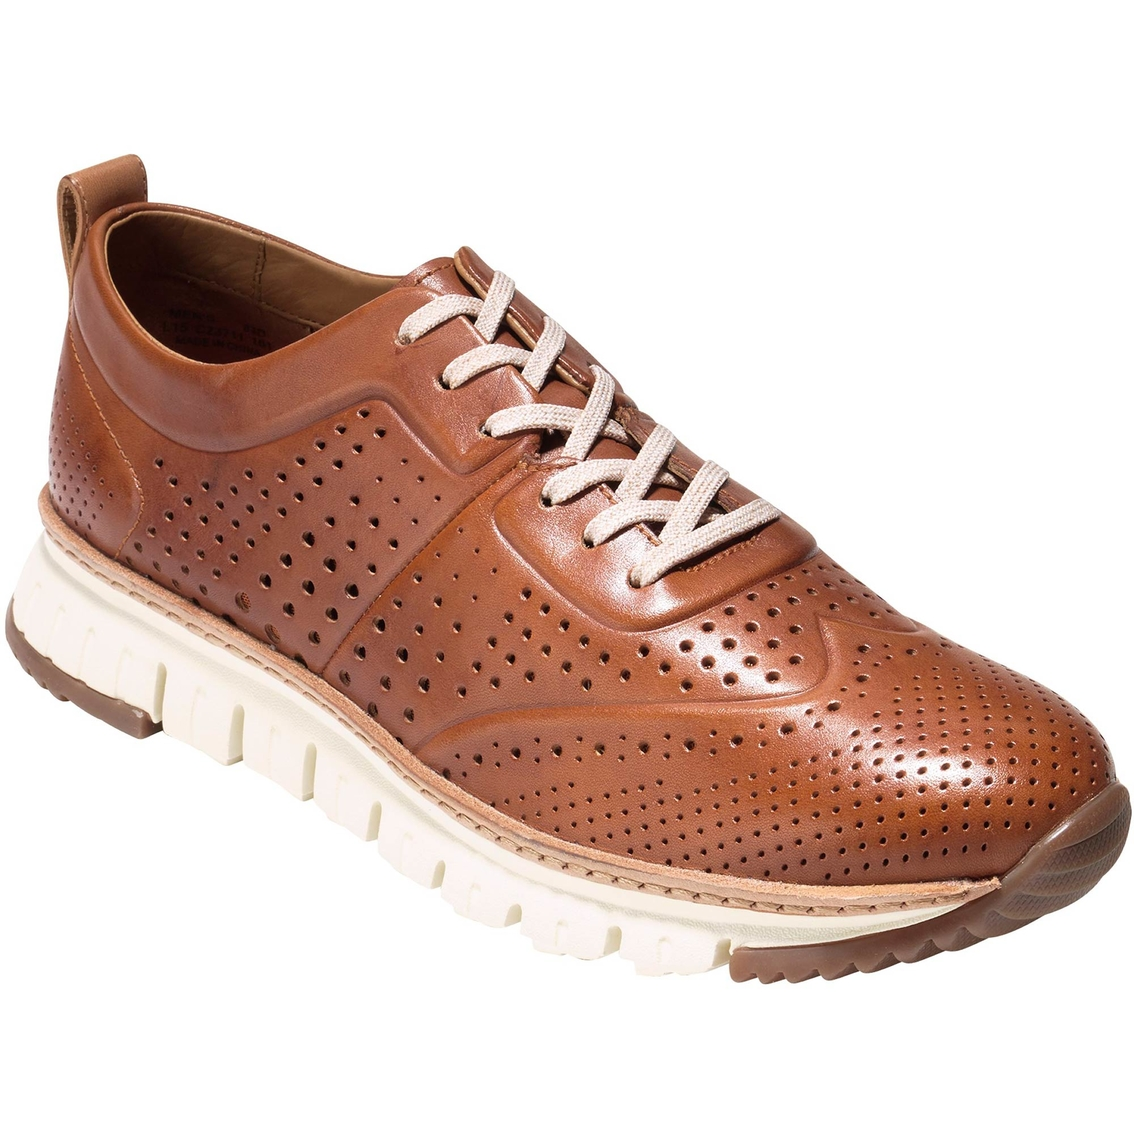 Cole Haan Zerogrand Perforated Sneakers